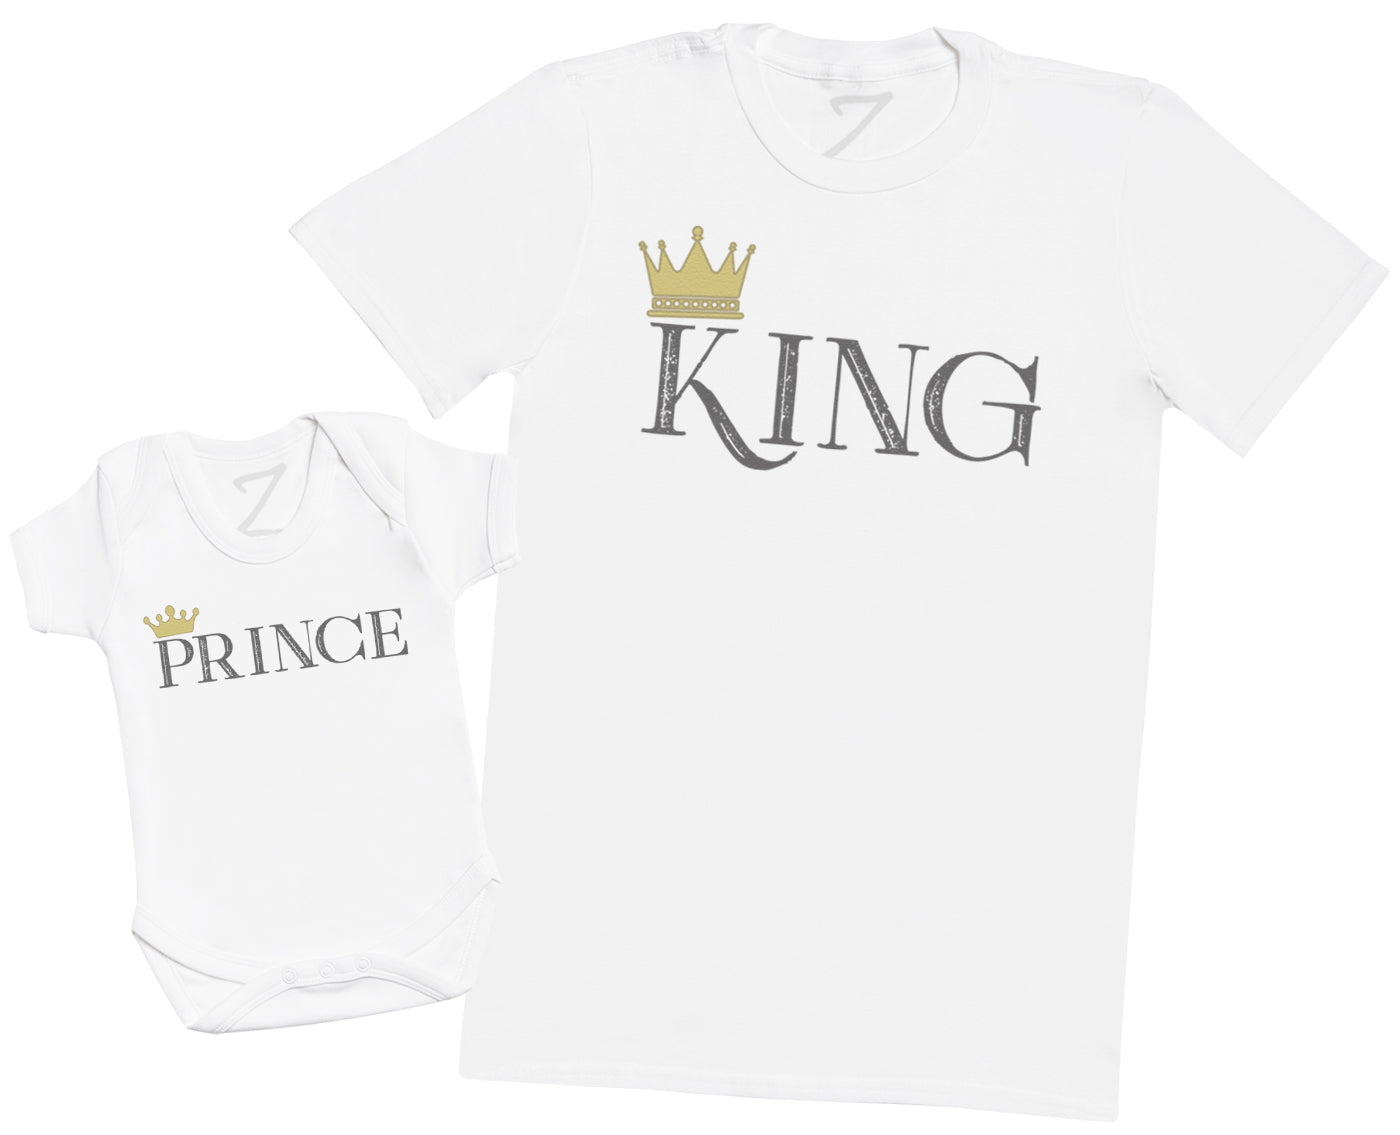 King & Prince - Mens T Shirt & Baby Bodysuit